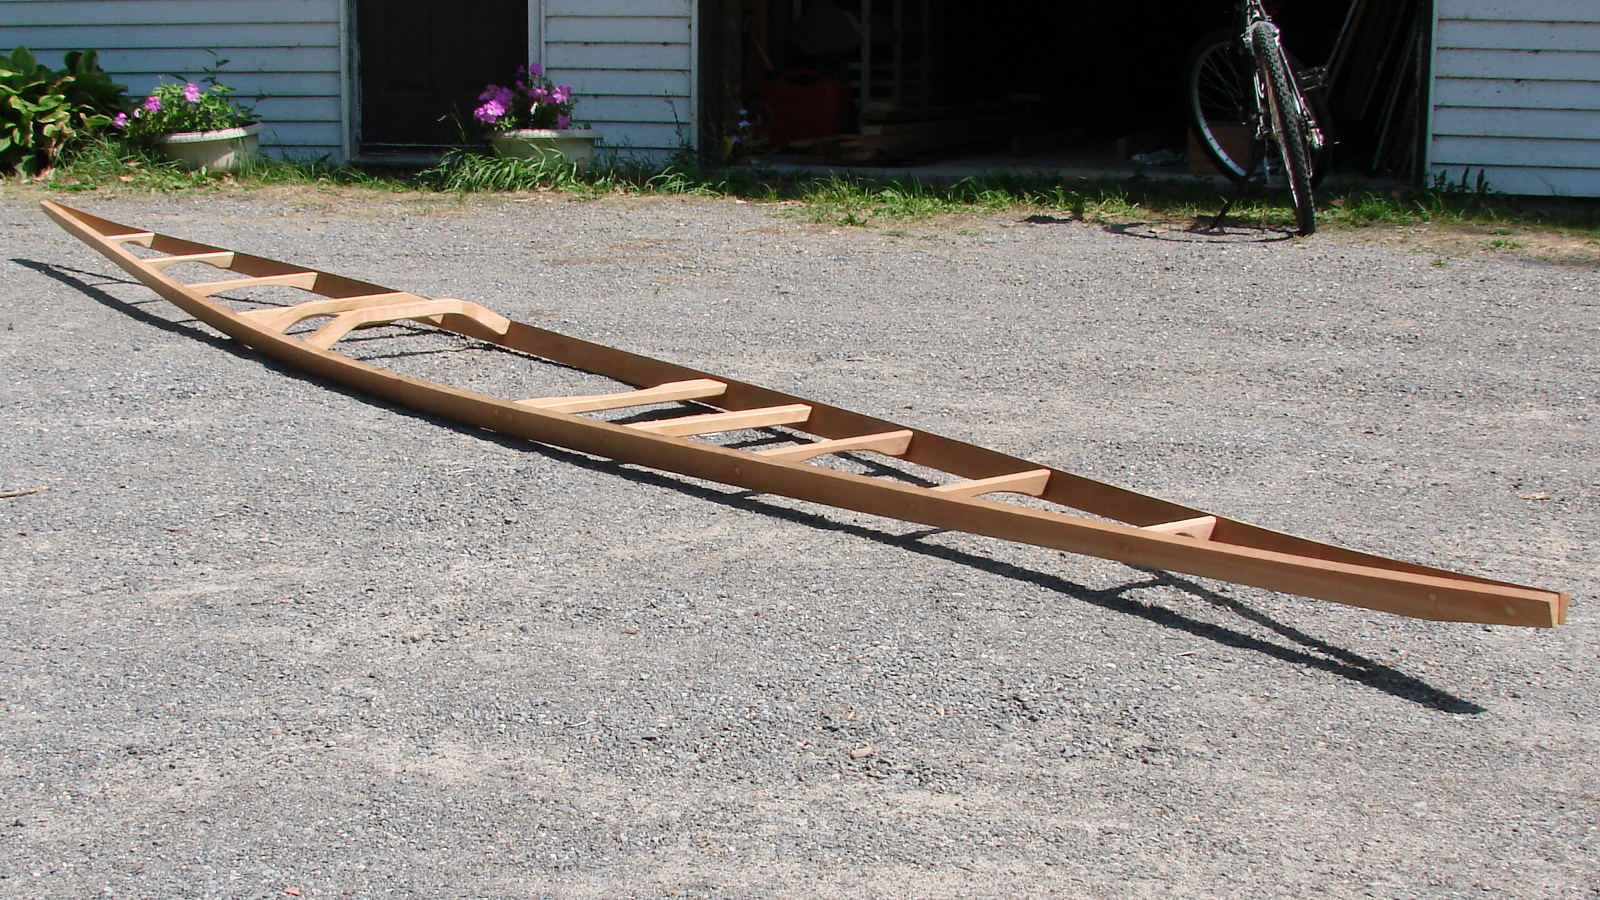 Skin on frame kayak plans - Frame Ready For Ribs